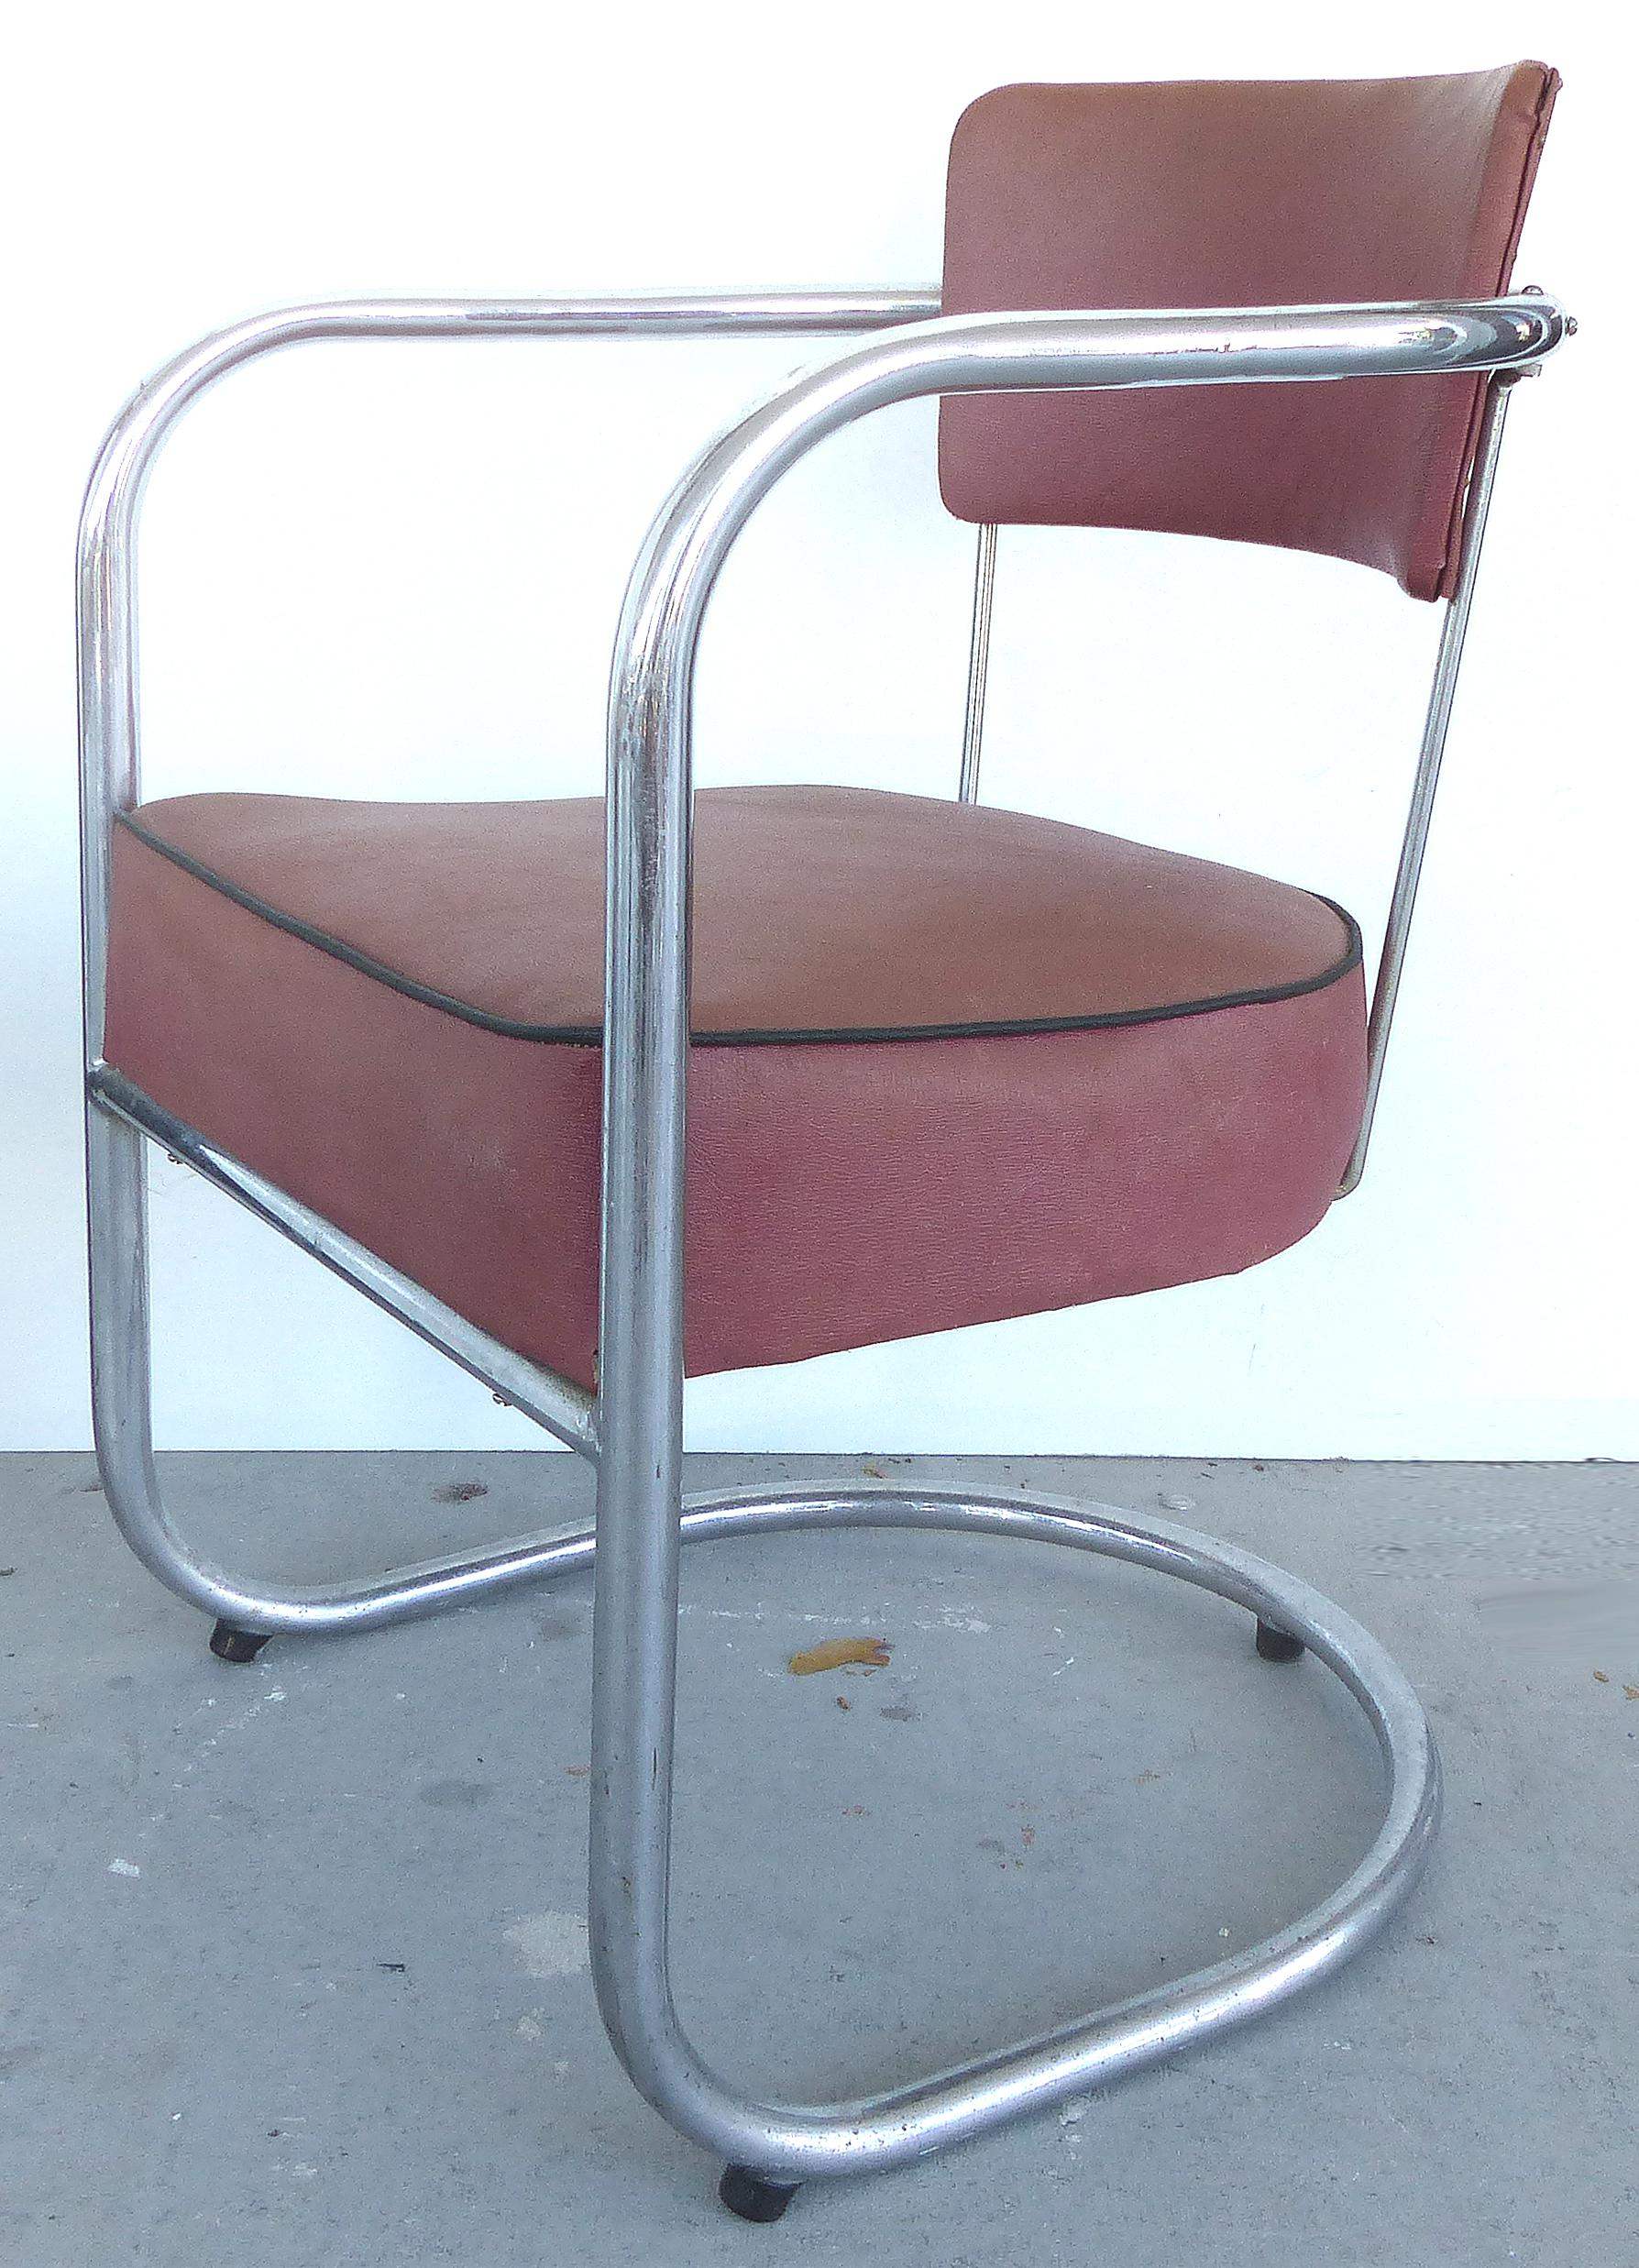 A Set Of Four Art Deco Cantilever Chrome Frame Chairs By Lloyd Loom. The  Chairs